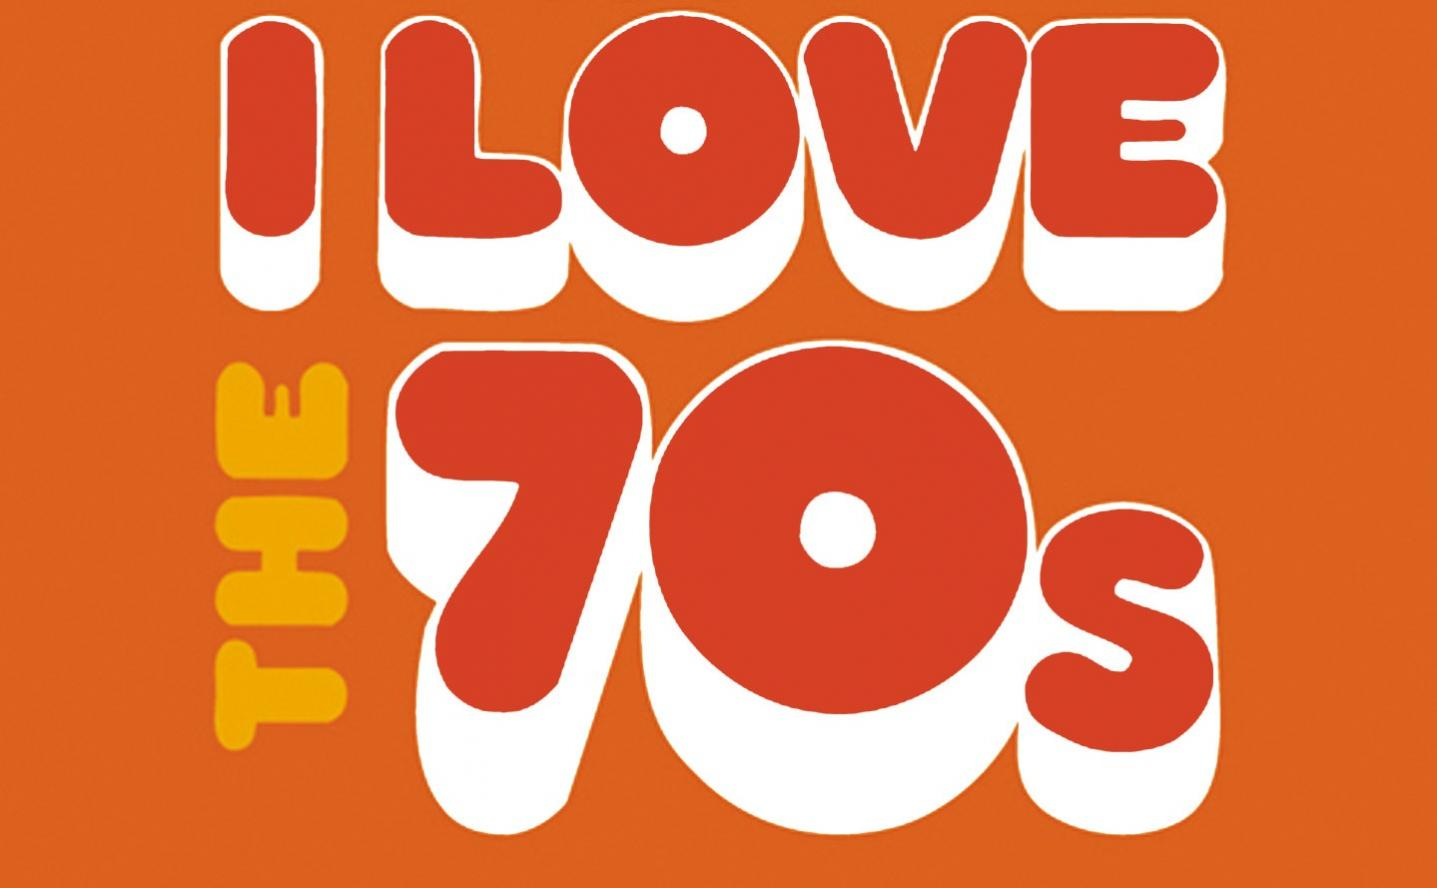 Greatest Rock Music Hits Of the 70's - Blogs - Newdigital World